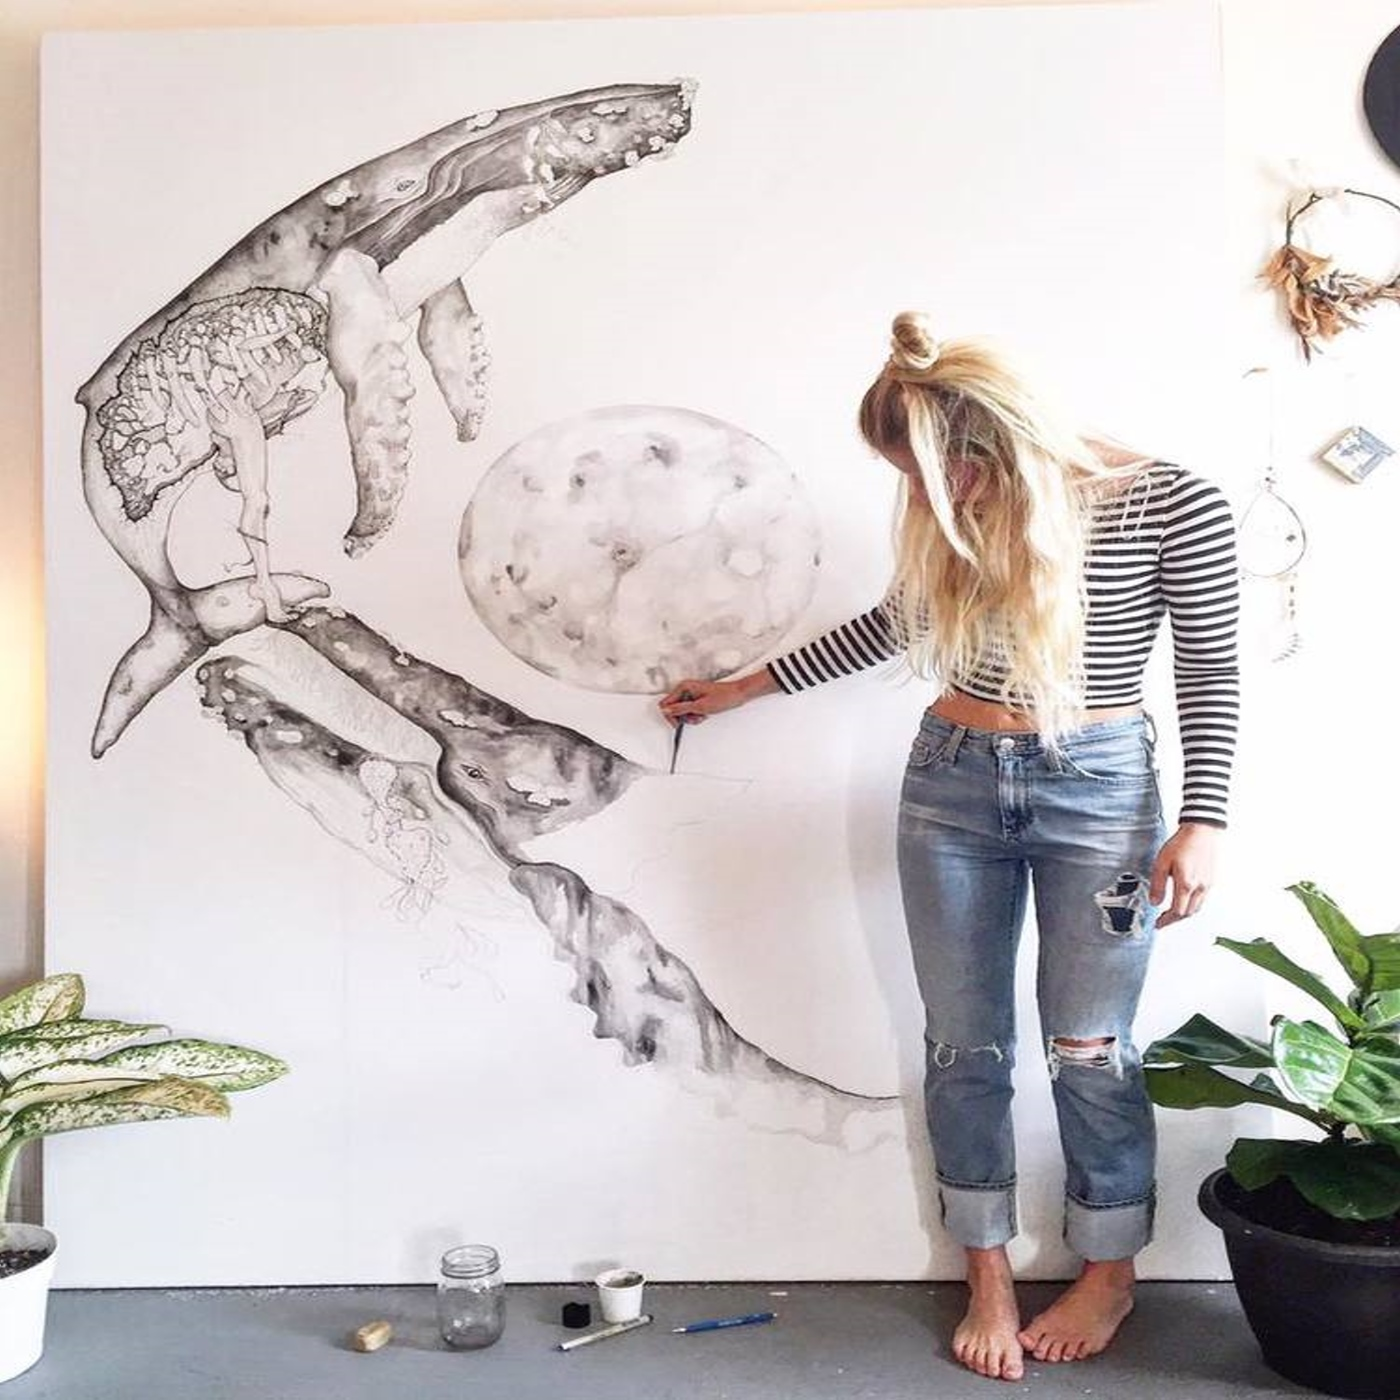 Ep. 2 Marissa Quinn: Nature's Narratives in Pen and Ink